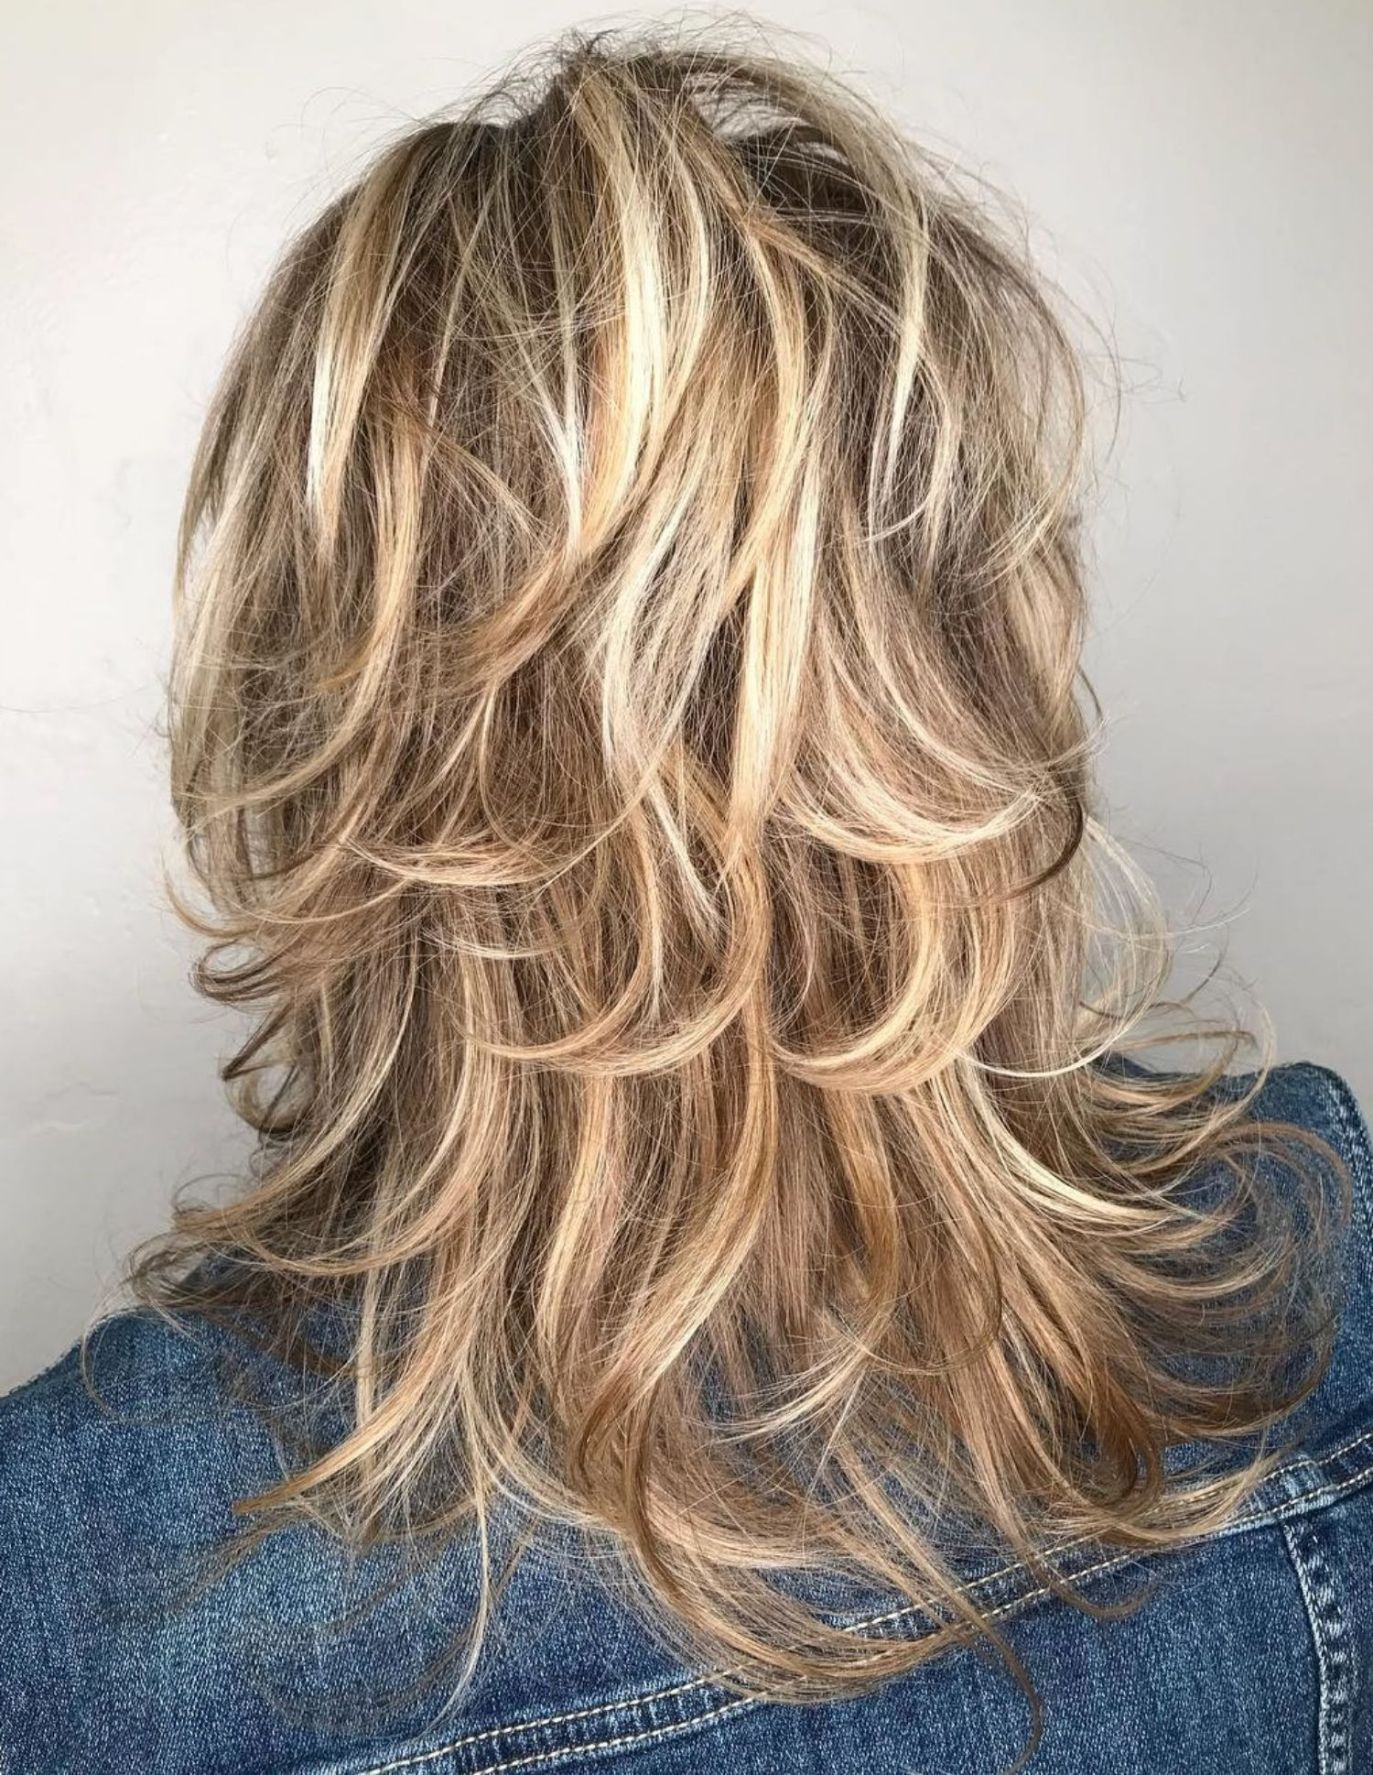 60 Lovely Long Shag Haircuts For Effortless Stylish Looks In 2020 Long Shag Haircut Long Shag Hairstyles Long Thin Hair